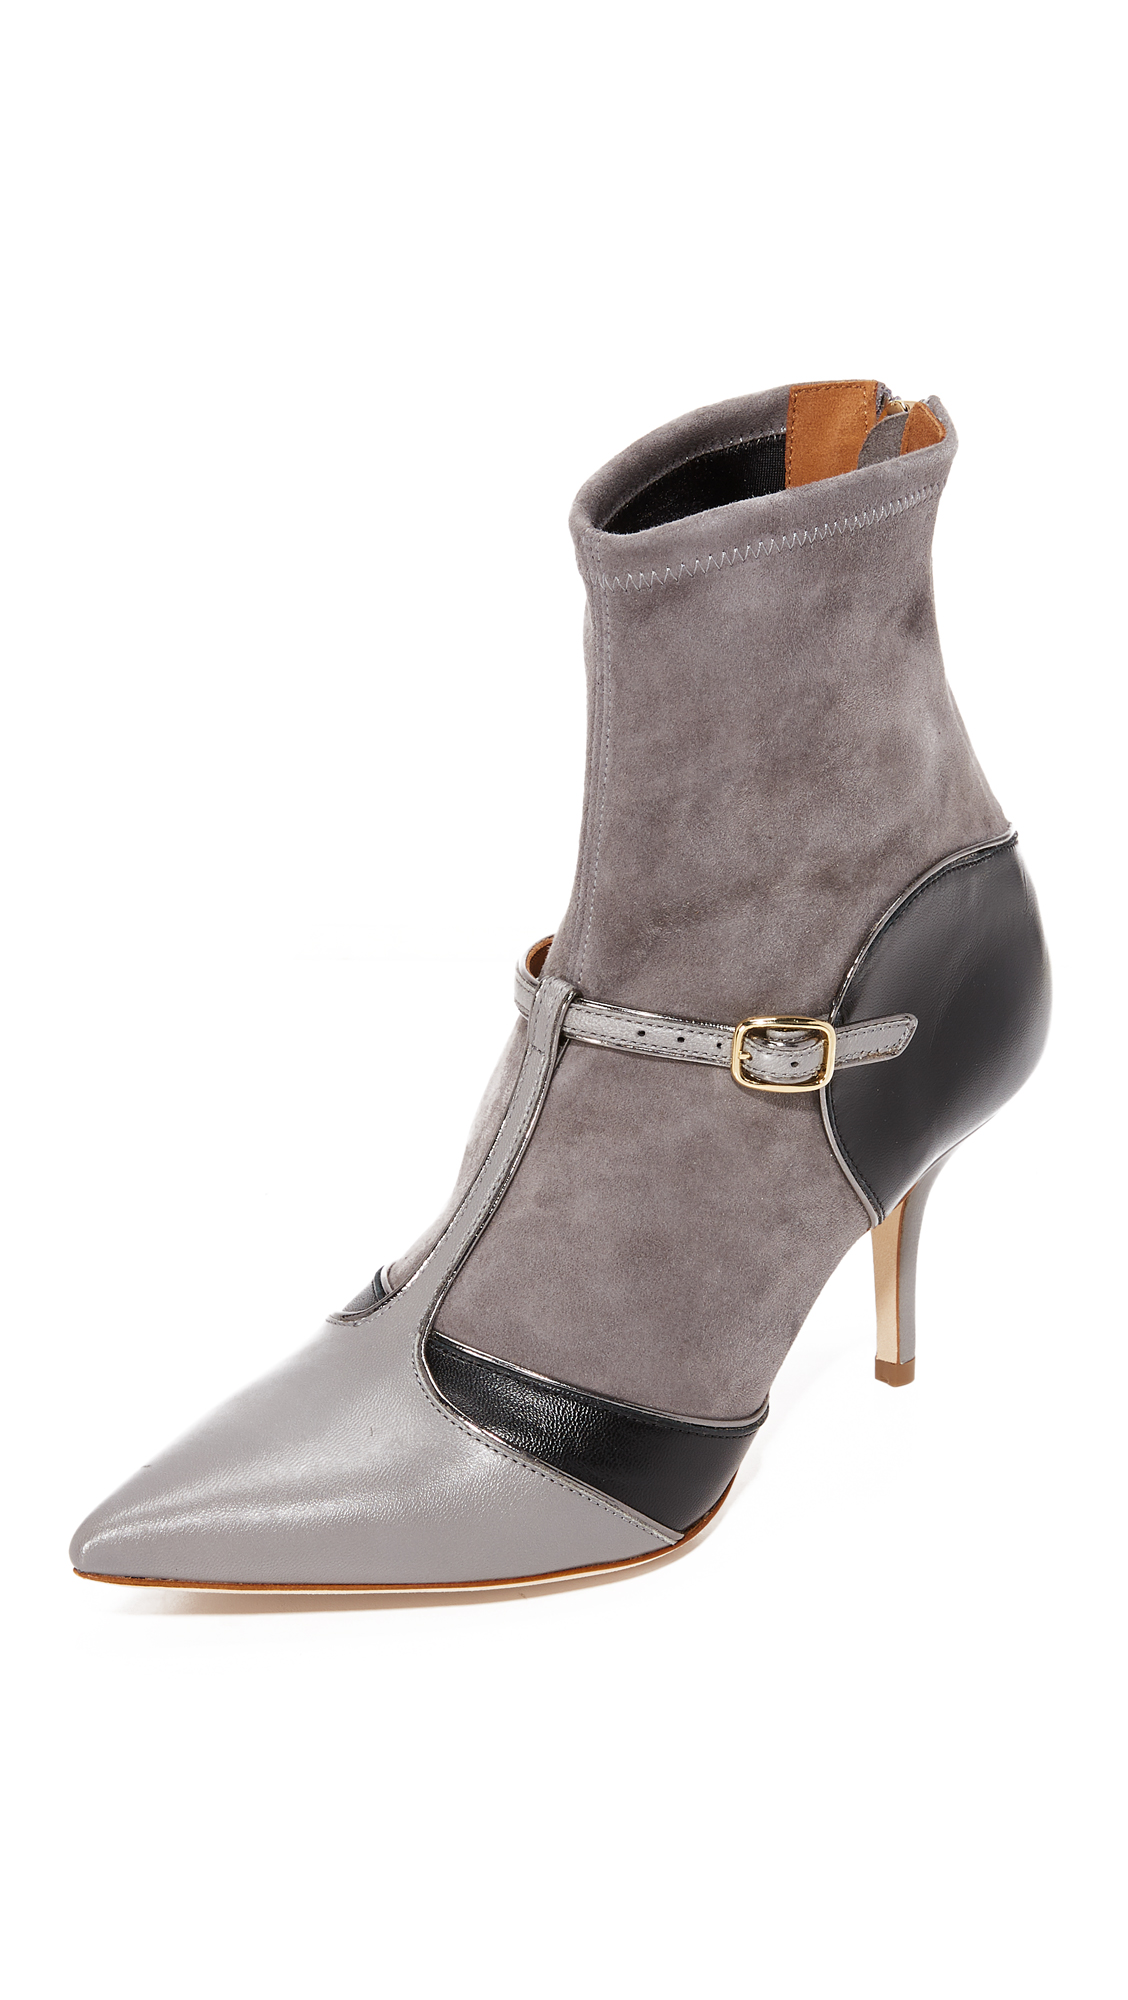 Malone Souliers Sadie Booties - Black/Grey/Dark Grey/Charcoal